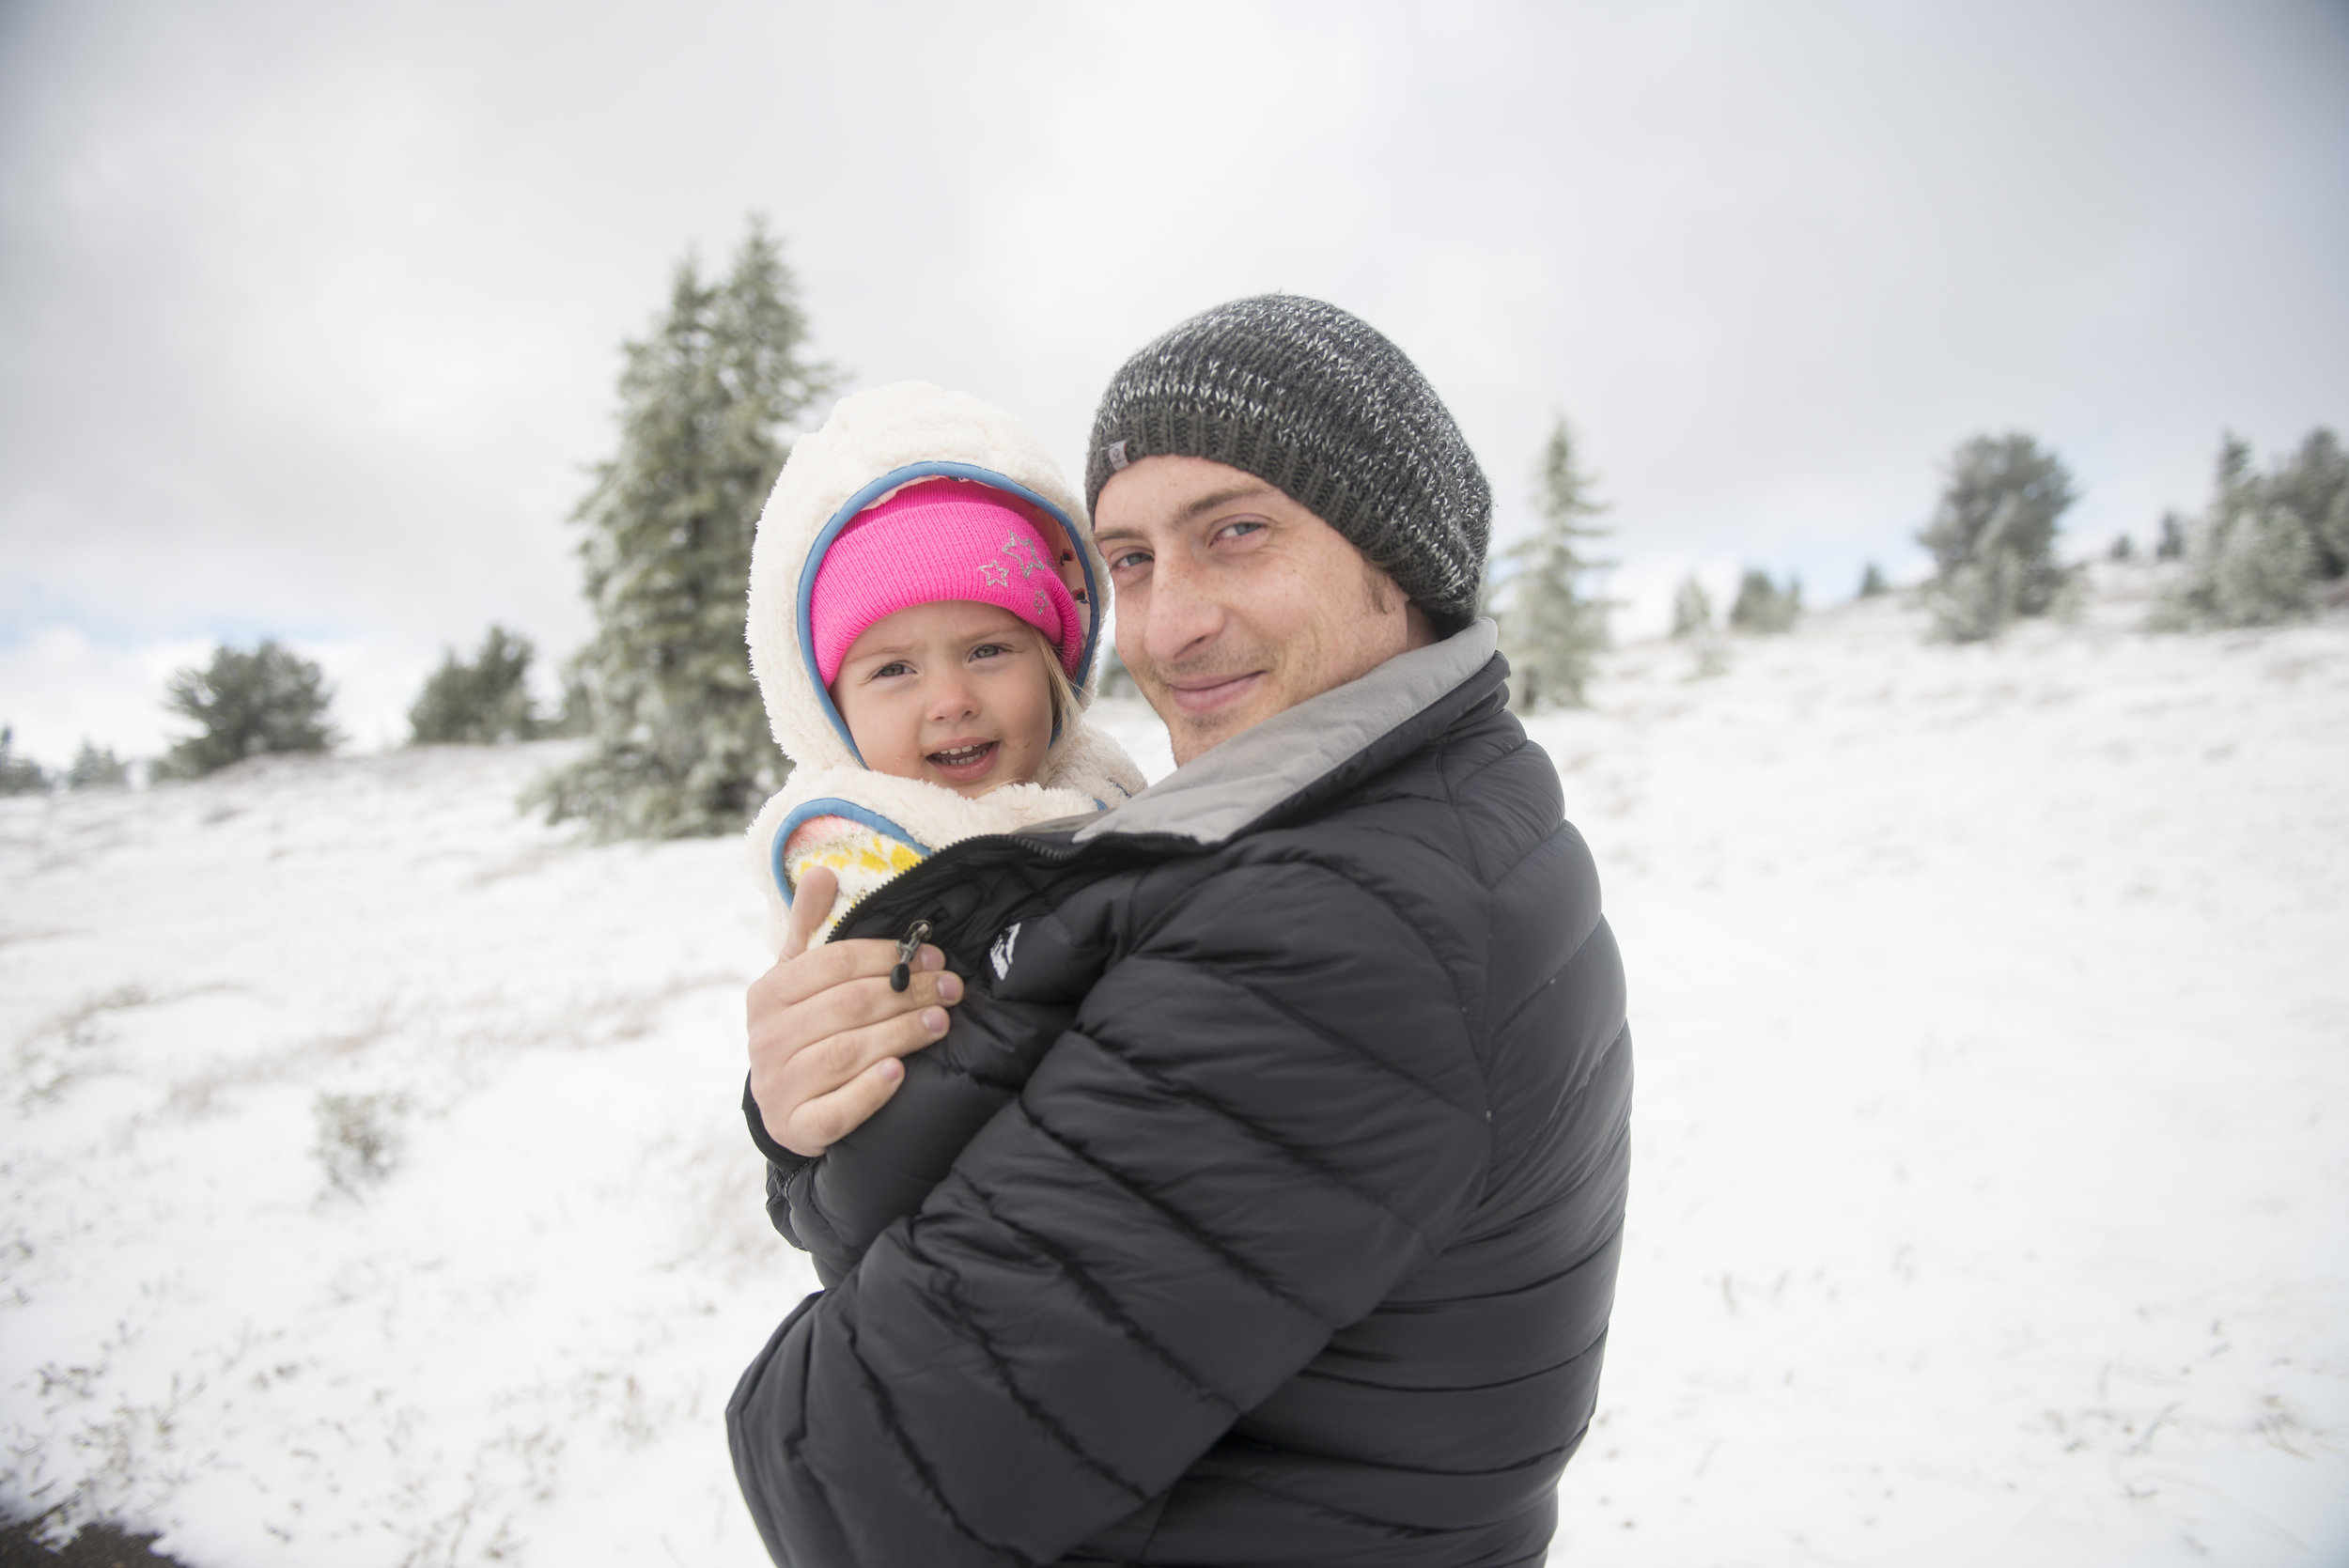 Ila-and-dad-in-winter.jpg